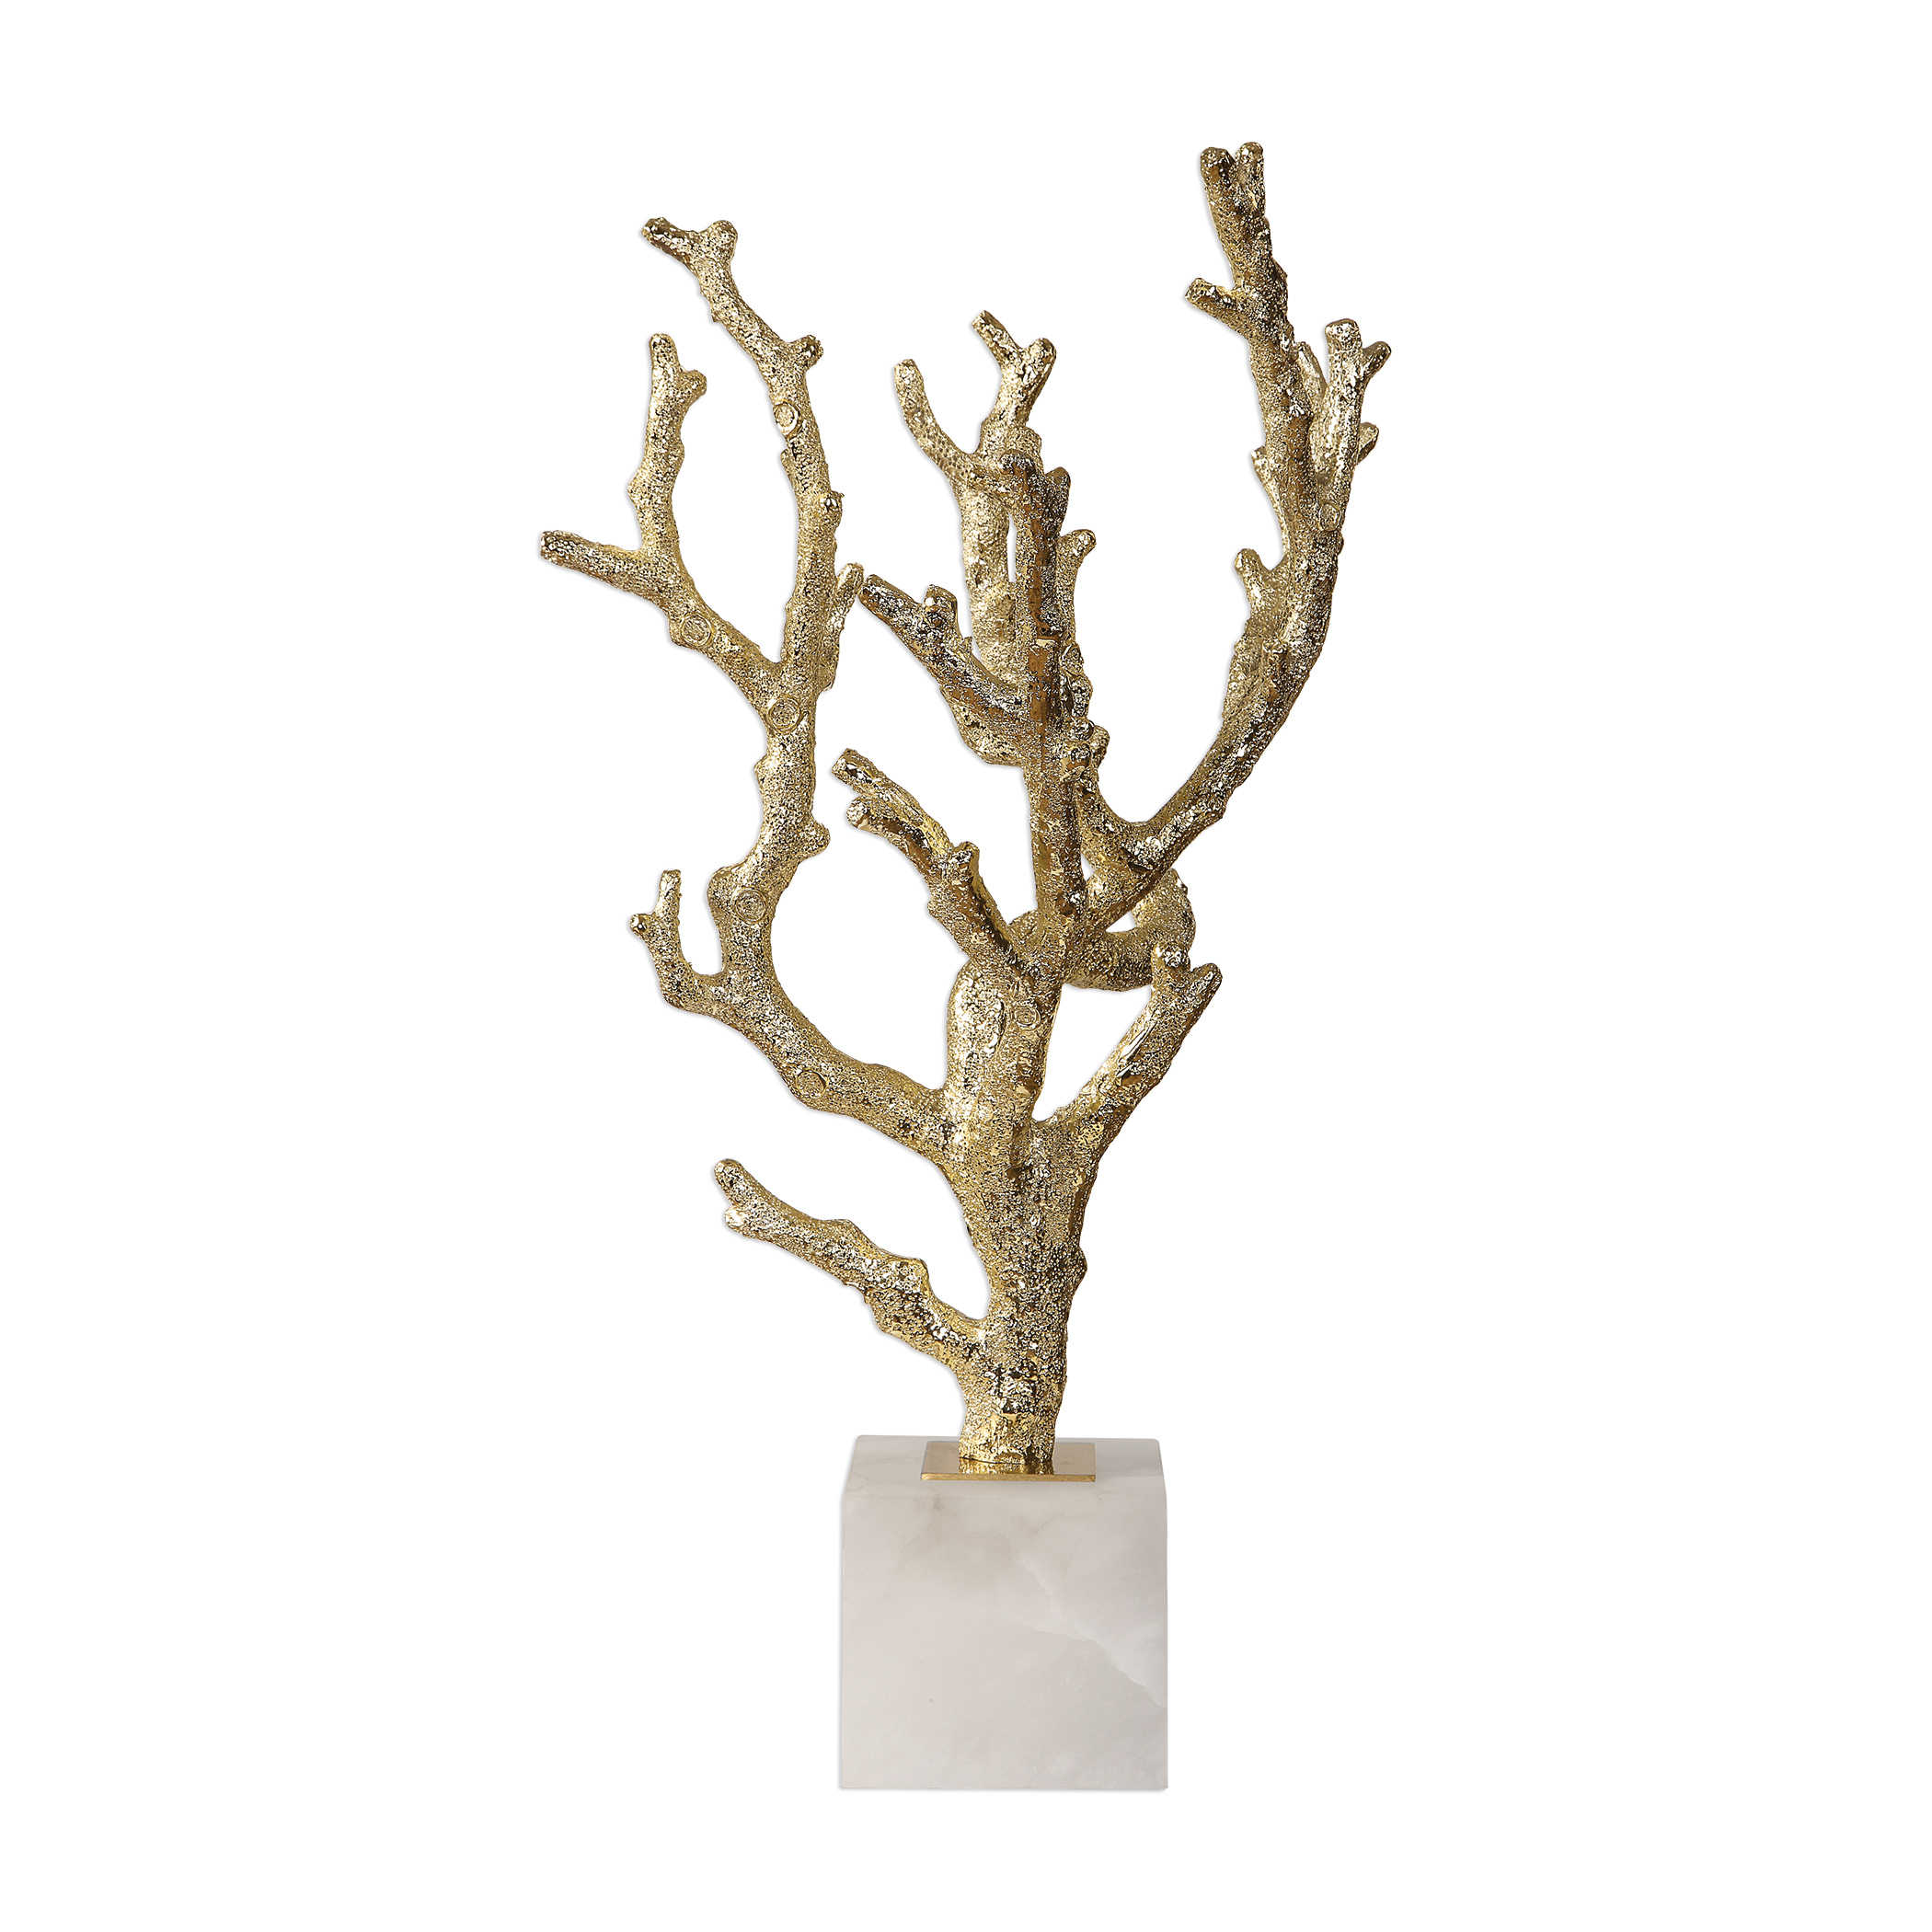 Silver Plated Coral Sculpture-$298.00